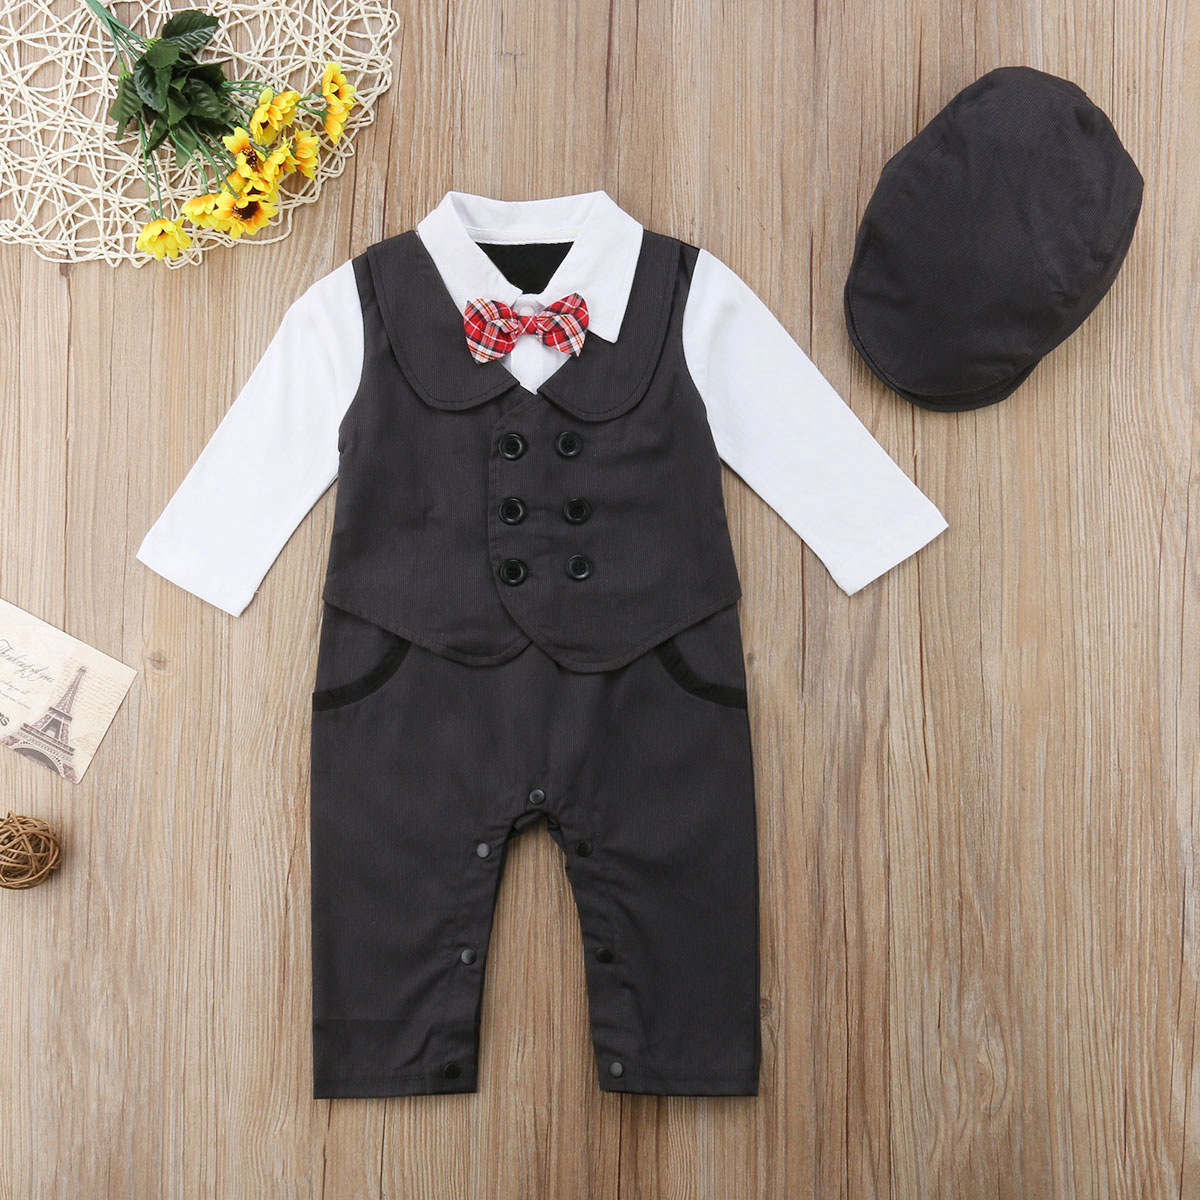 b08a5cf6190 Newly Toddler Baby Boy Formal Suit Party Wedding Tuxedo Gentleman Double  Breasted Romper Jumpsuit +Hats Outfit 0 24M-in Rompers from Mother   Kids  on ...